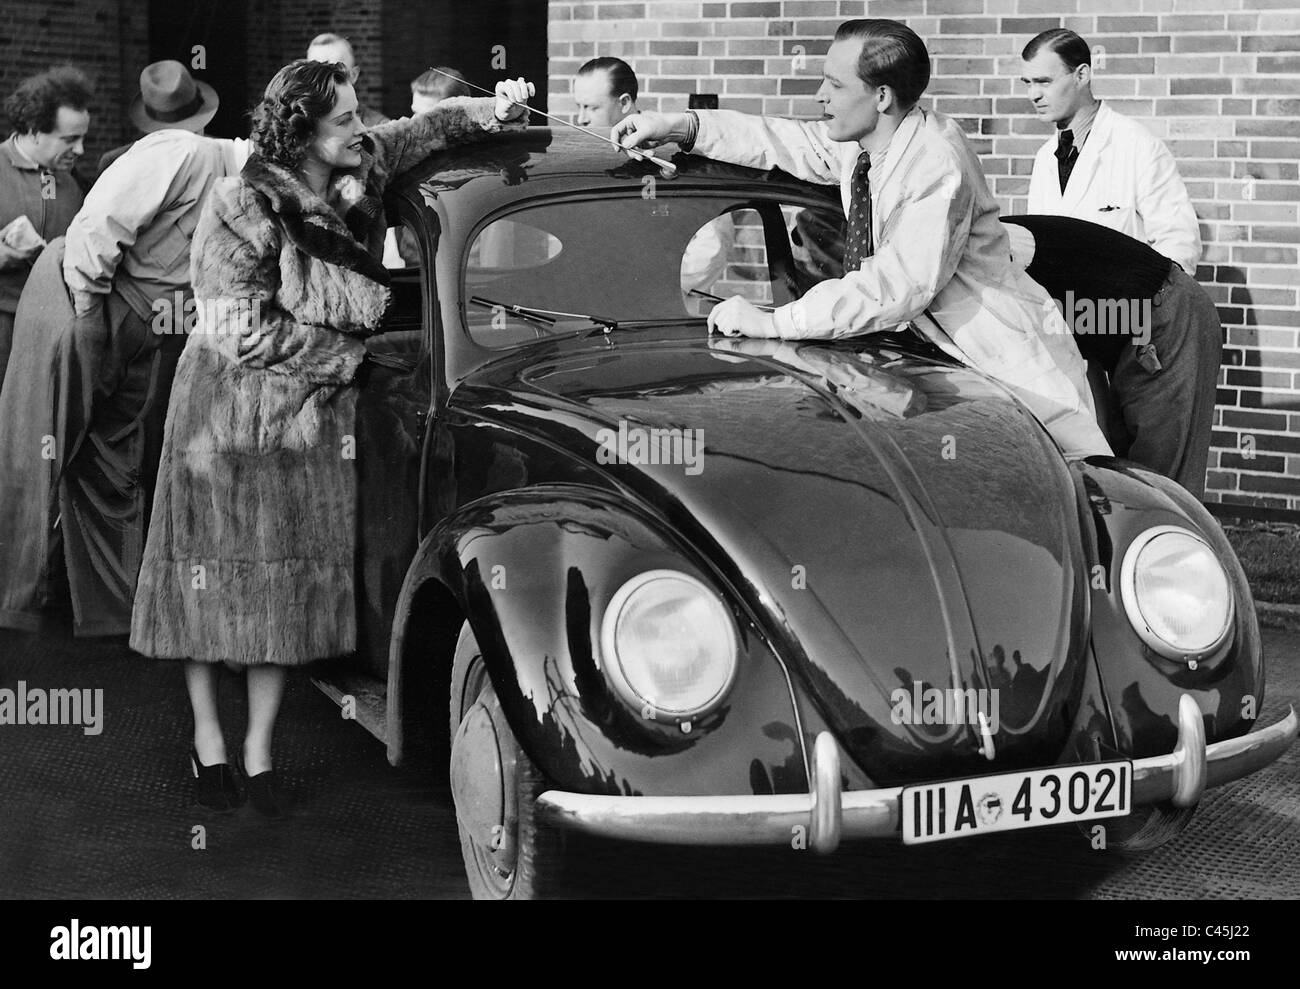 Ursula Grabley and Paul Klinger with a VW Beetle, 1941 - Stock Image